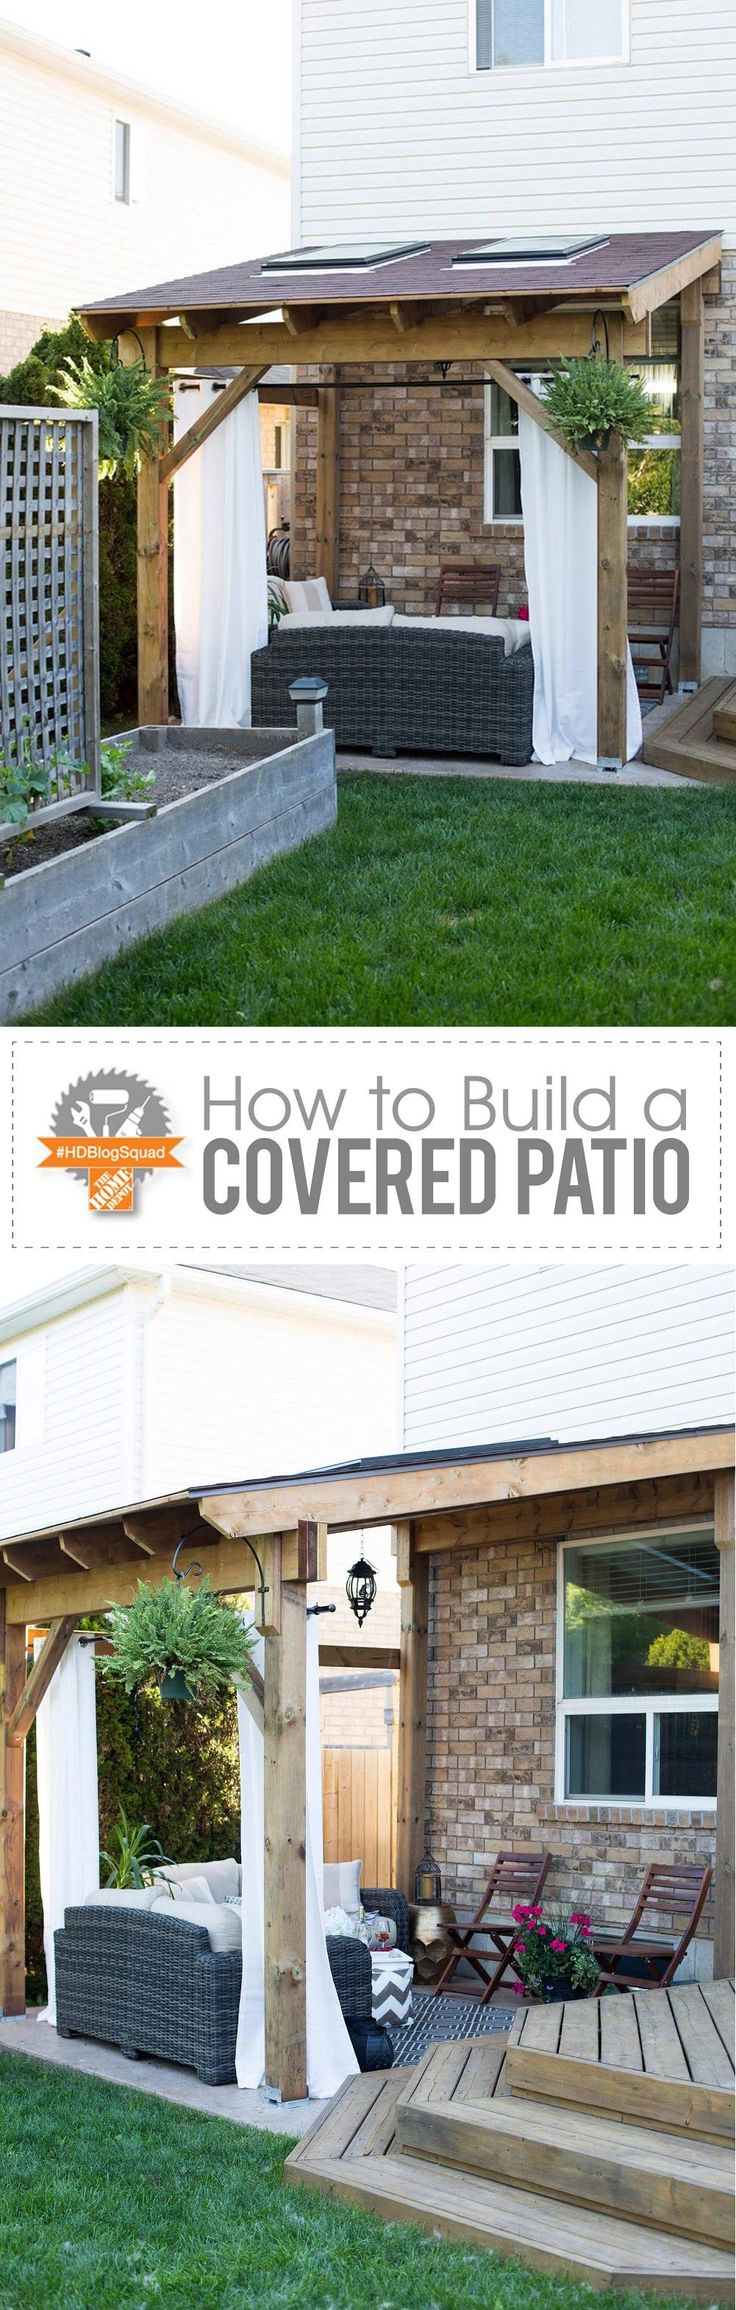 """Take the indoors outside - build a covered patio! This step-by-step post will show you how to build a """"lean-to"""" style patio cover just in time for summer."""